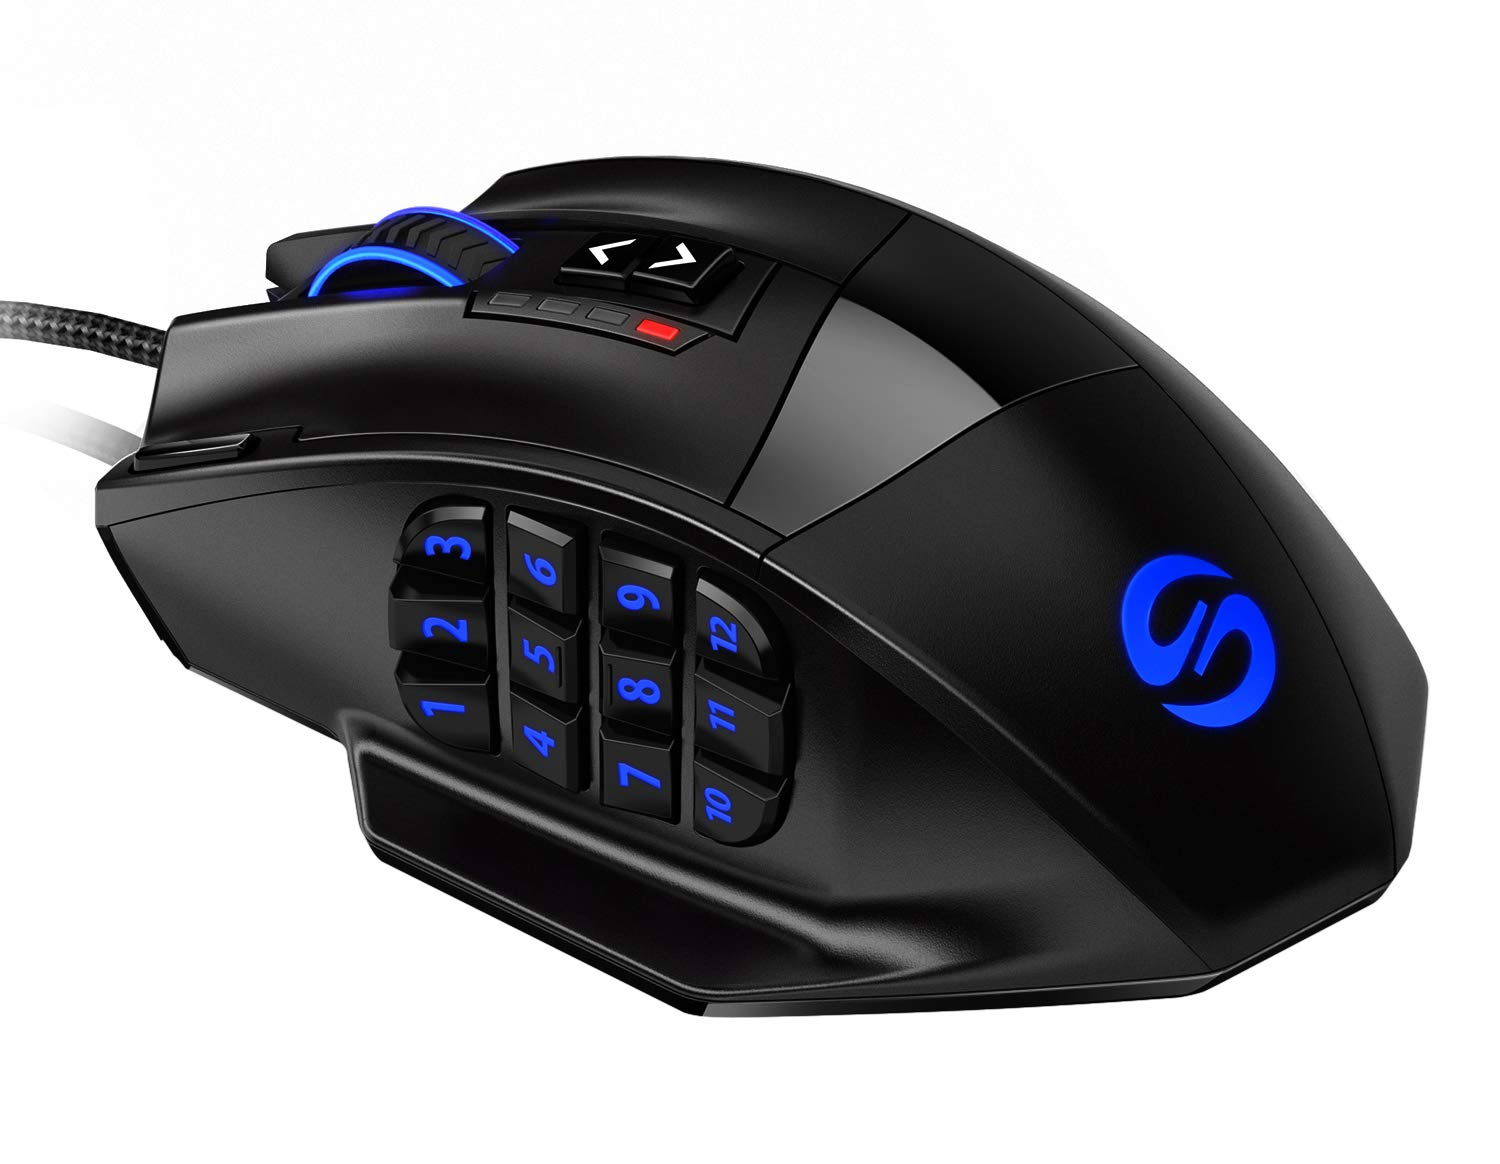 UtechSmart Venus Gaming Mouse RGB Wired, 16400 DPI High Precision Laser Programmable MMO Computer Gaming Mice [IGN's Recommendation] by UtechSmart